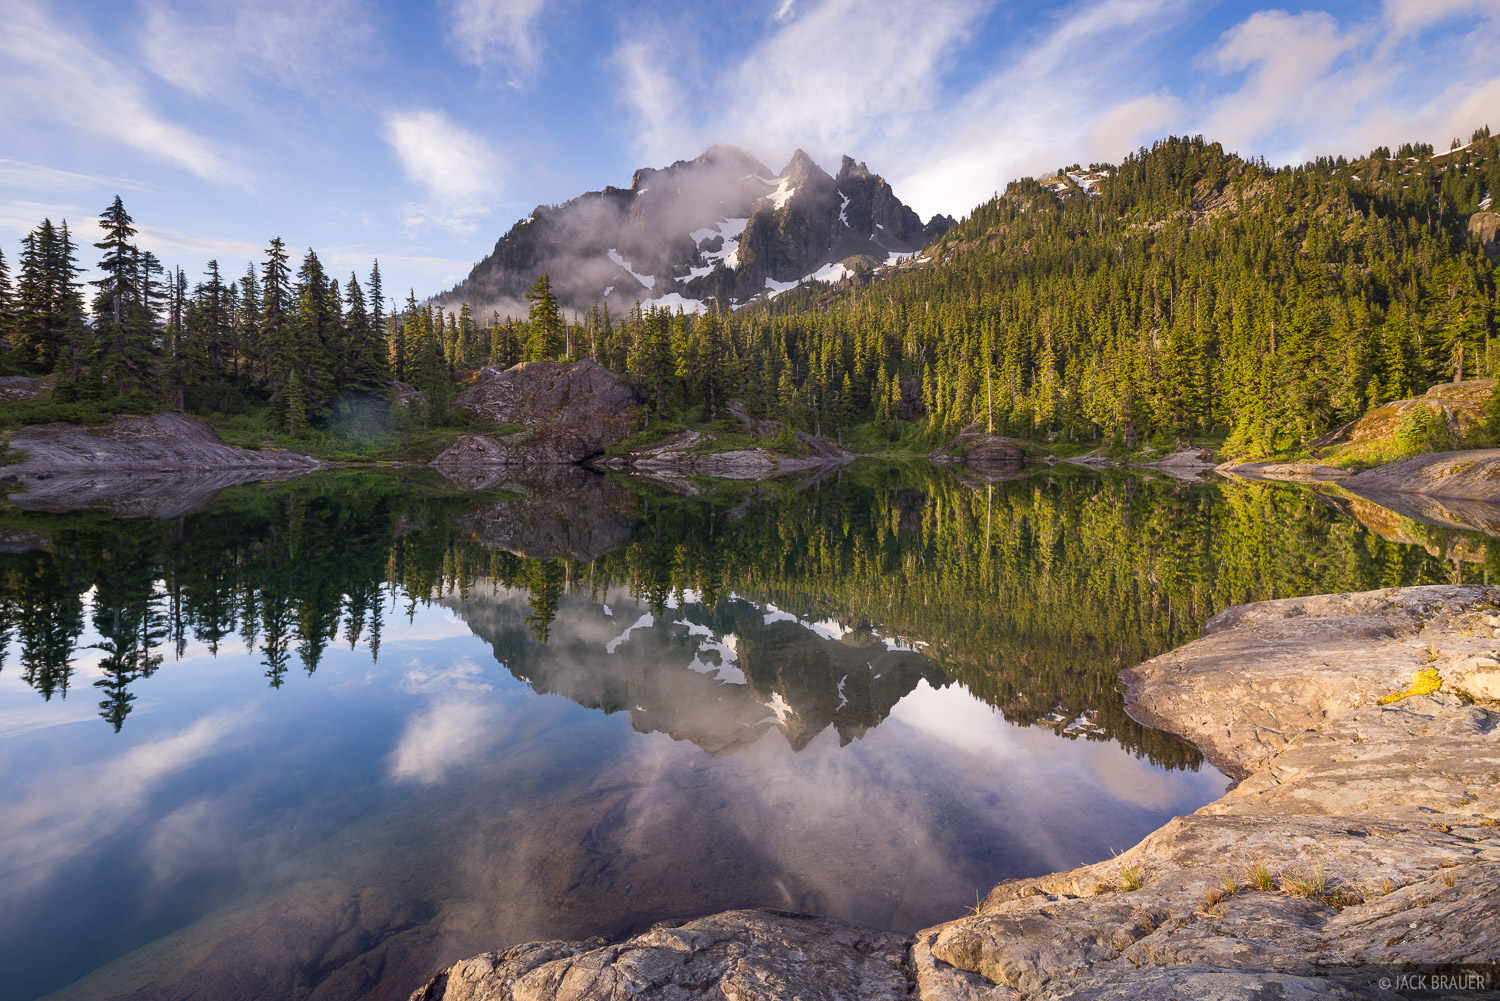 Alpine Lakes Wilderness, Spectacle Lake, Three Queens, Washington, Cascades, photo